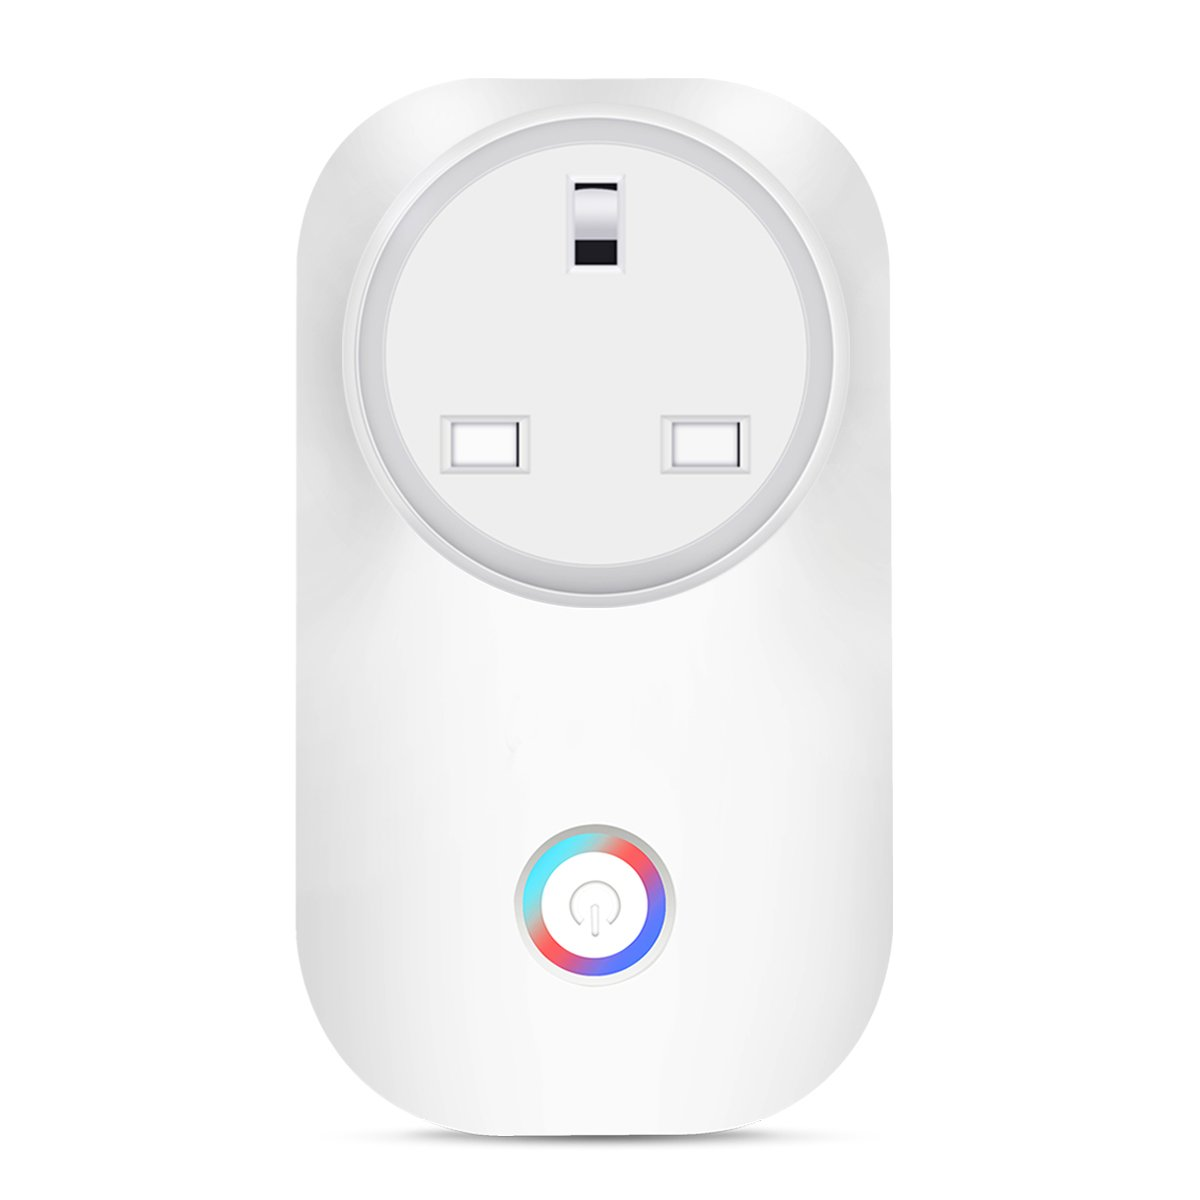 Smart Plug Outlet Timmer Switch Energy Monitoring Compatible with Alexa Google Home Echo No Hub Required Remote Control Your Devices